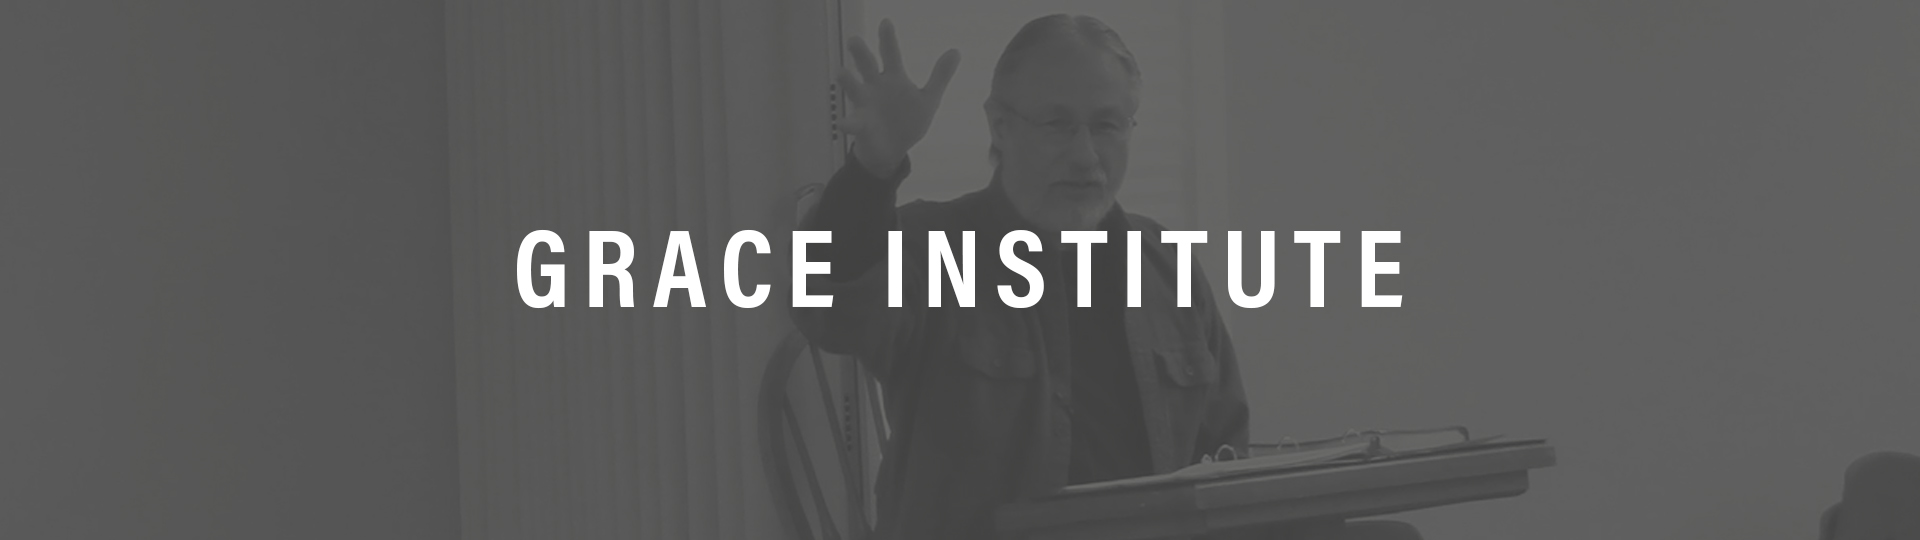 grace-institute-web